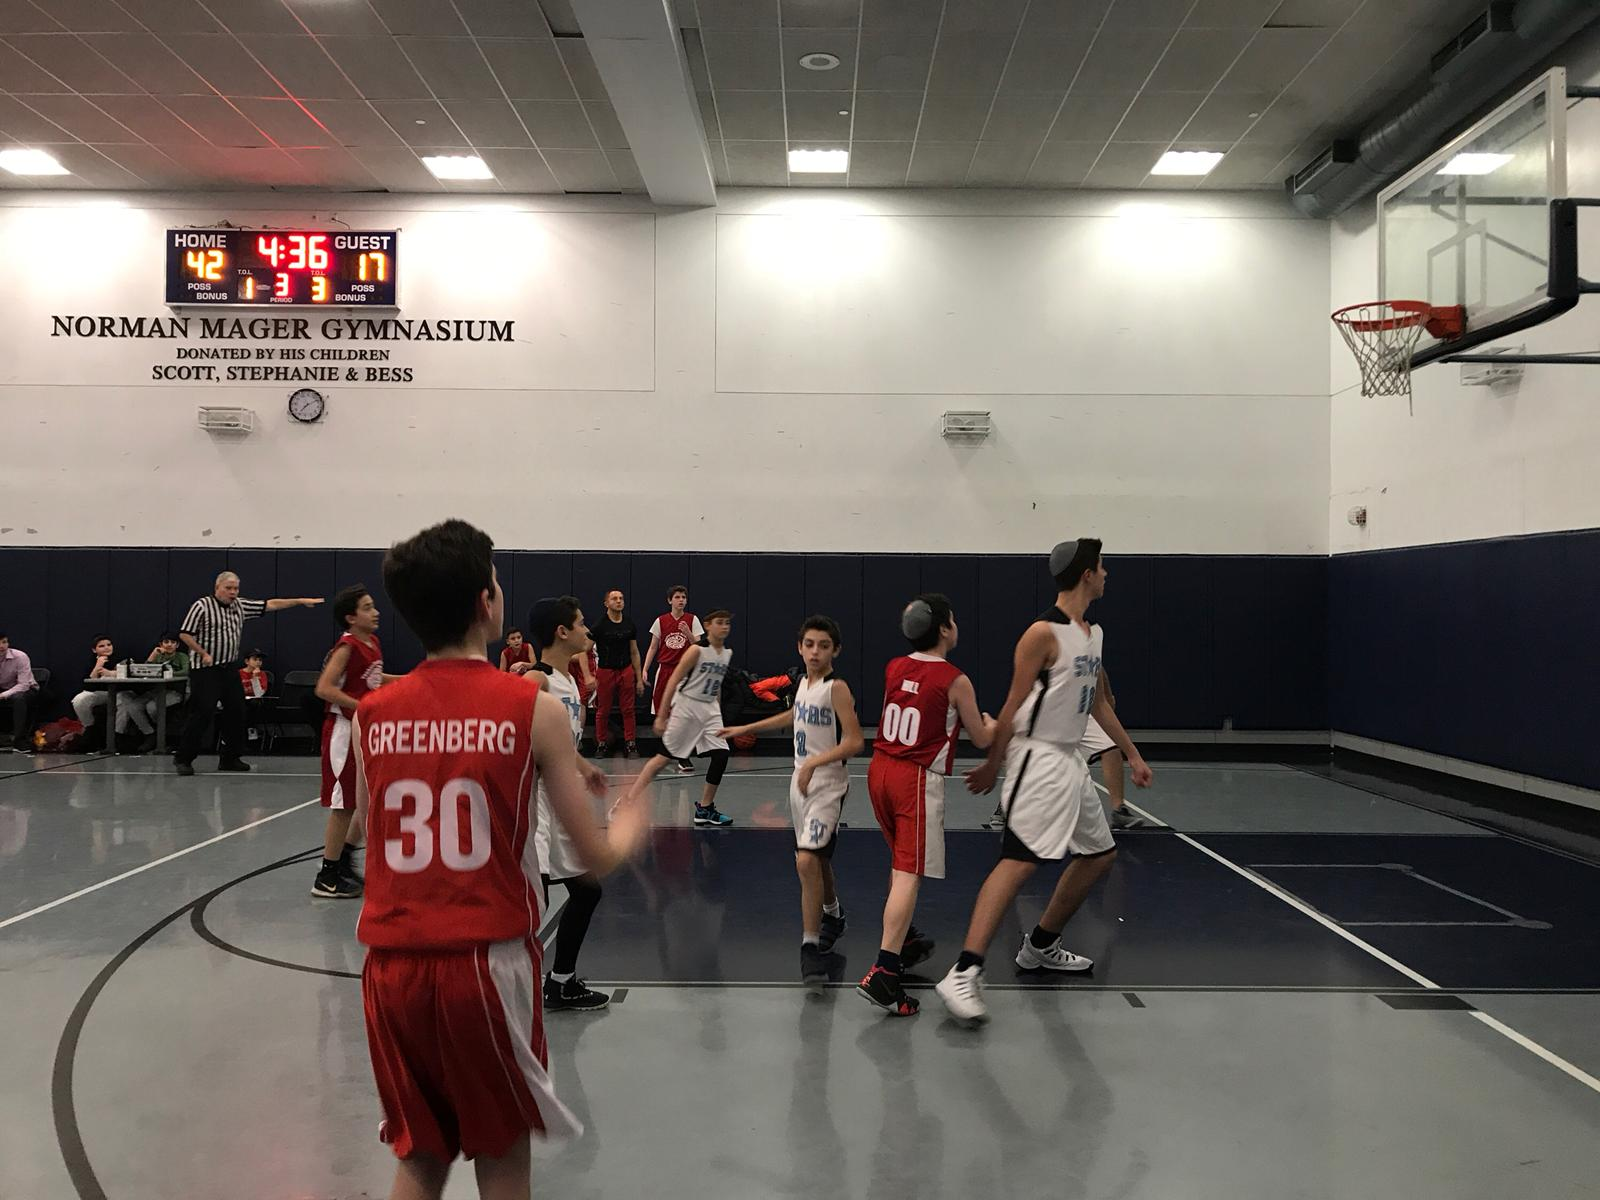 Yeshiva middle schools students play basketball